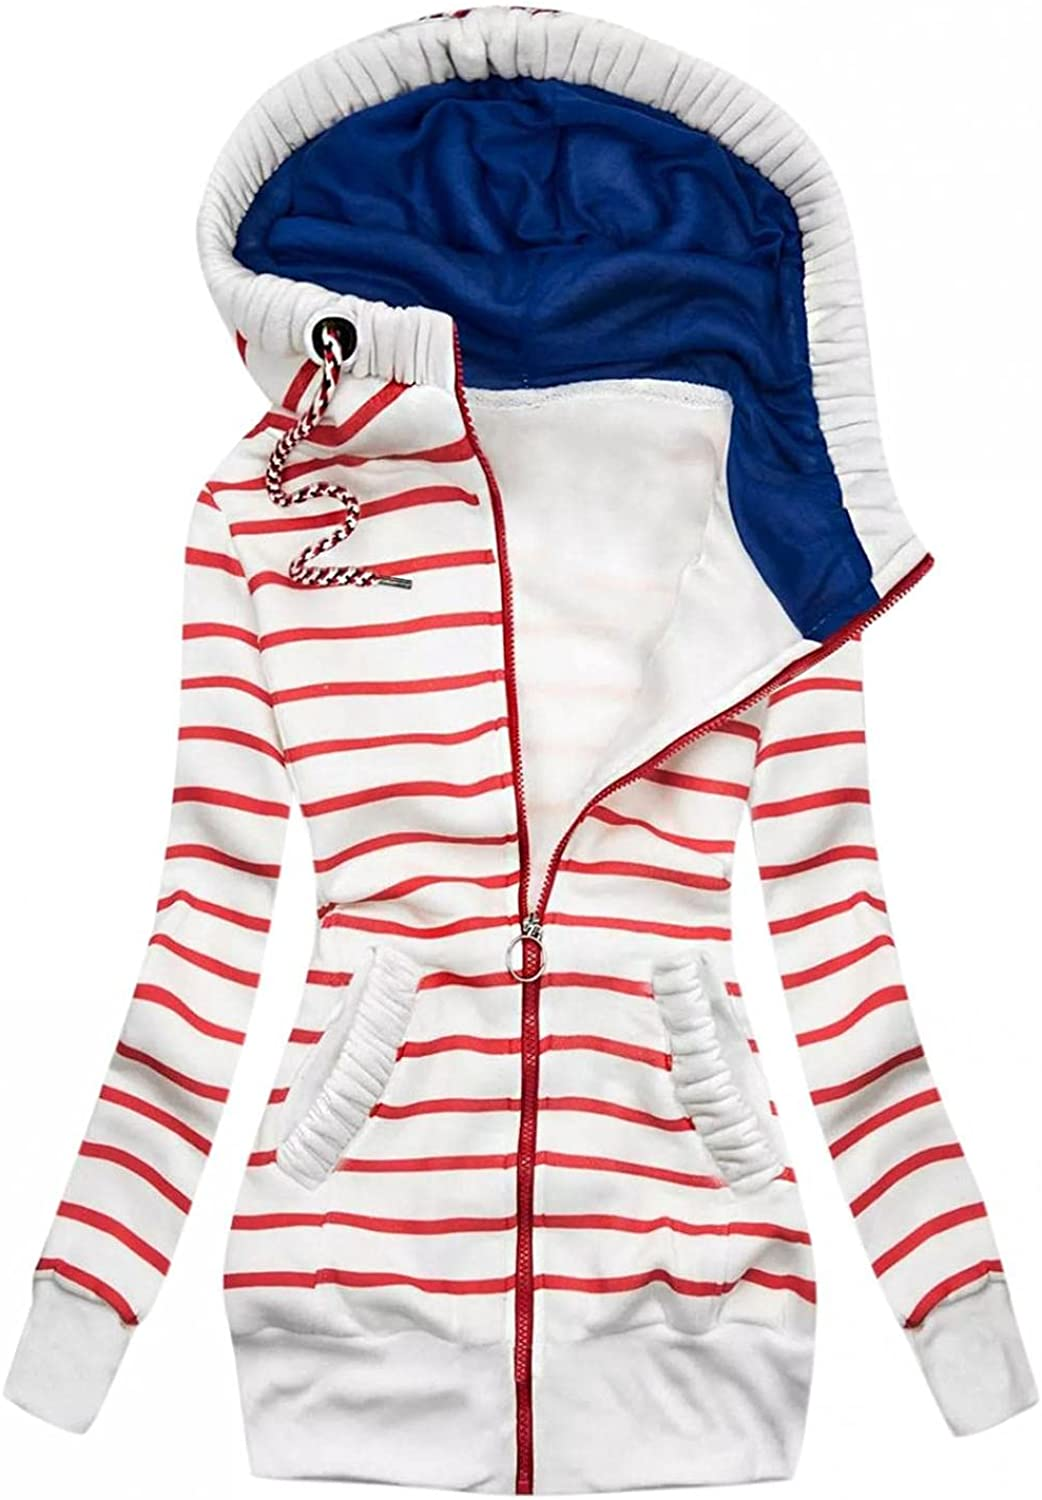 UOCUFY Hoodies for Women Pullover,Women Drawstring Sweatshirts Striped Printed Zipper Long Sleeve Pullover Oversized Hooded